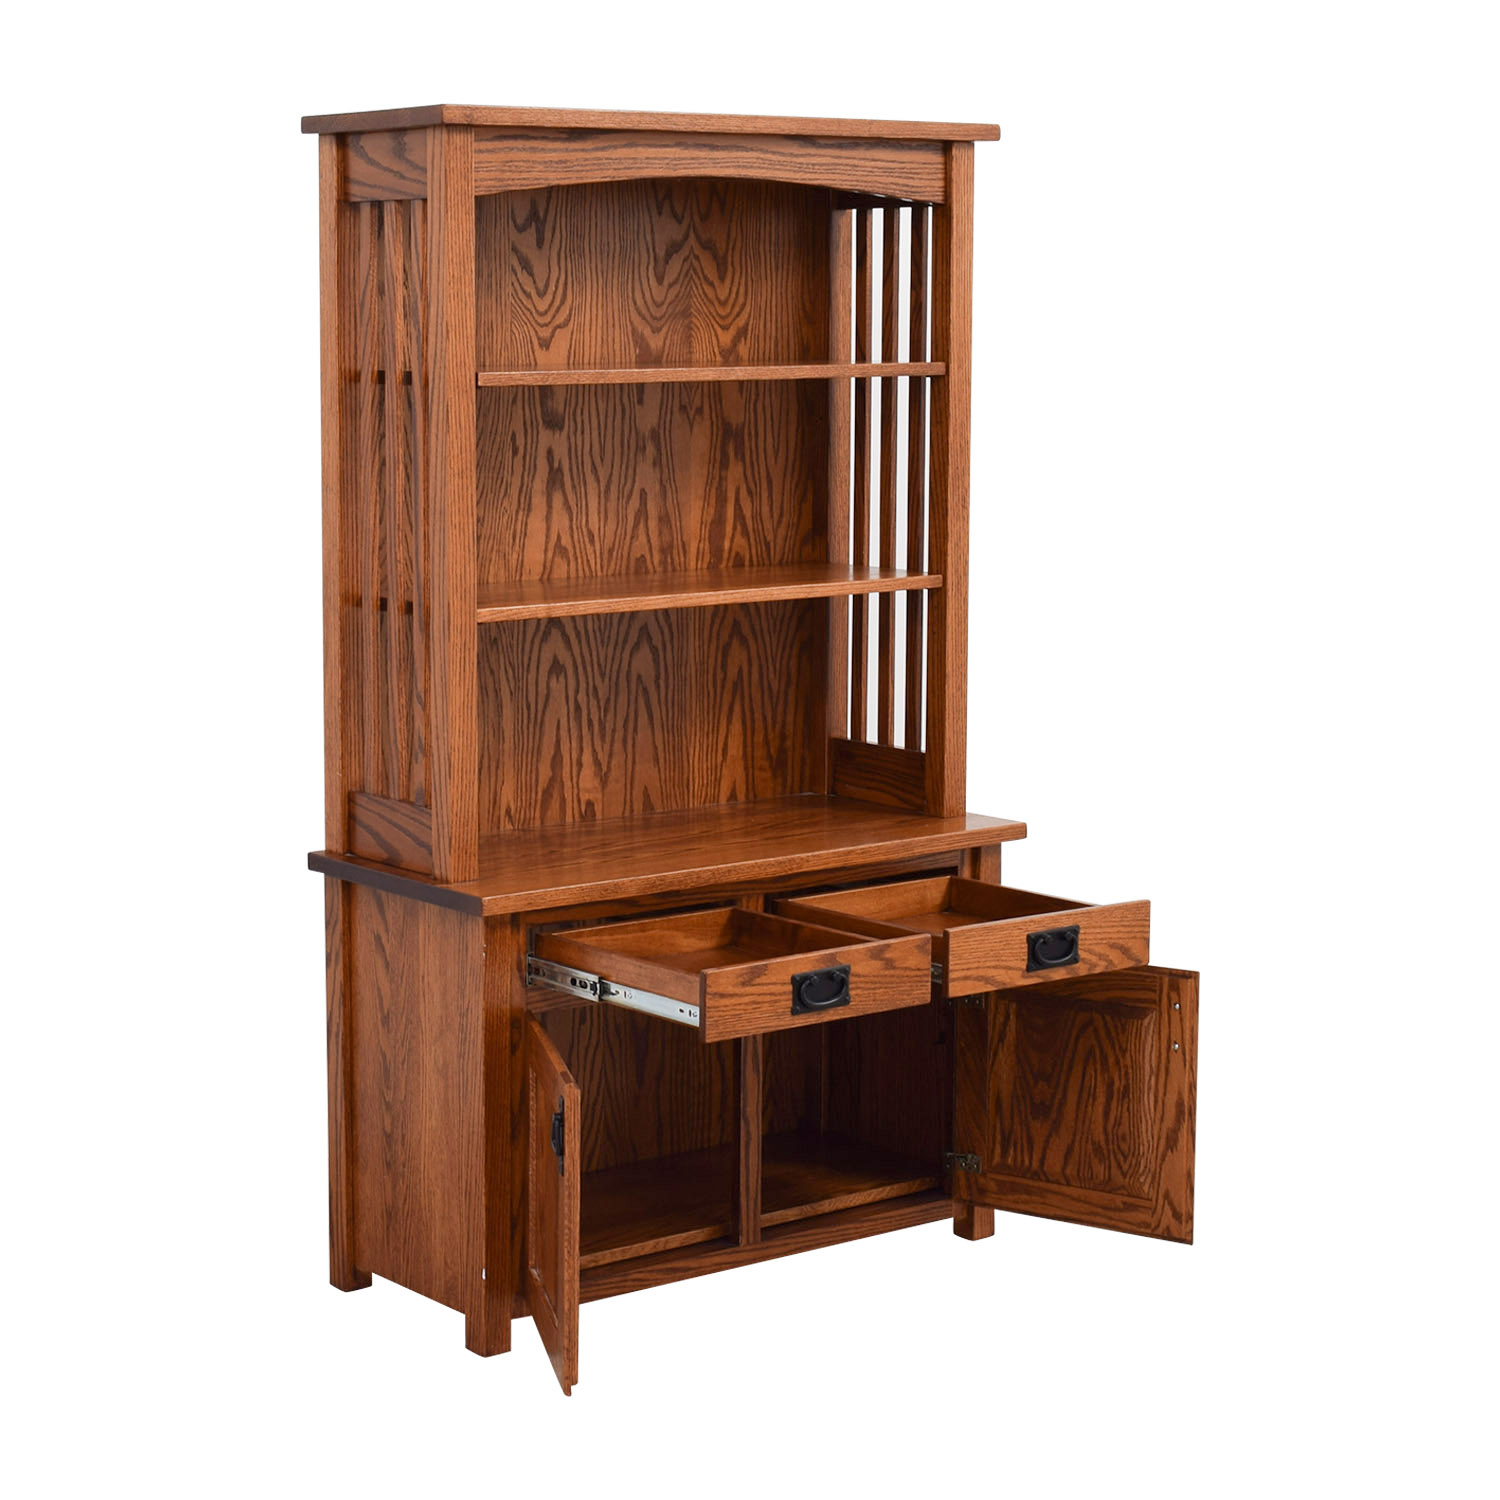 Amish Mission Furniture Amish Mission Hutch Brown